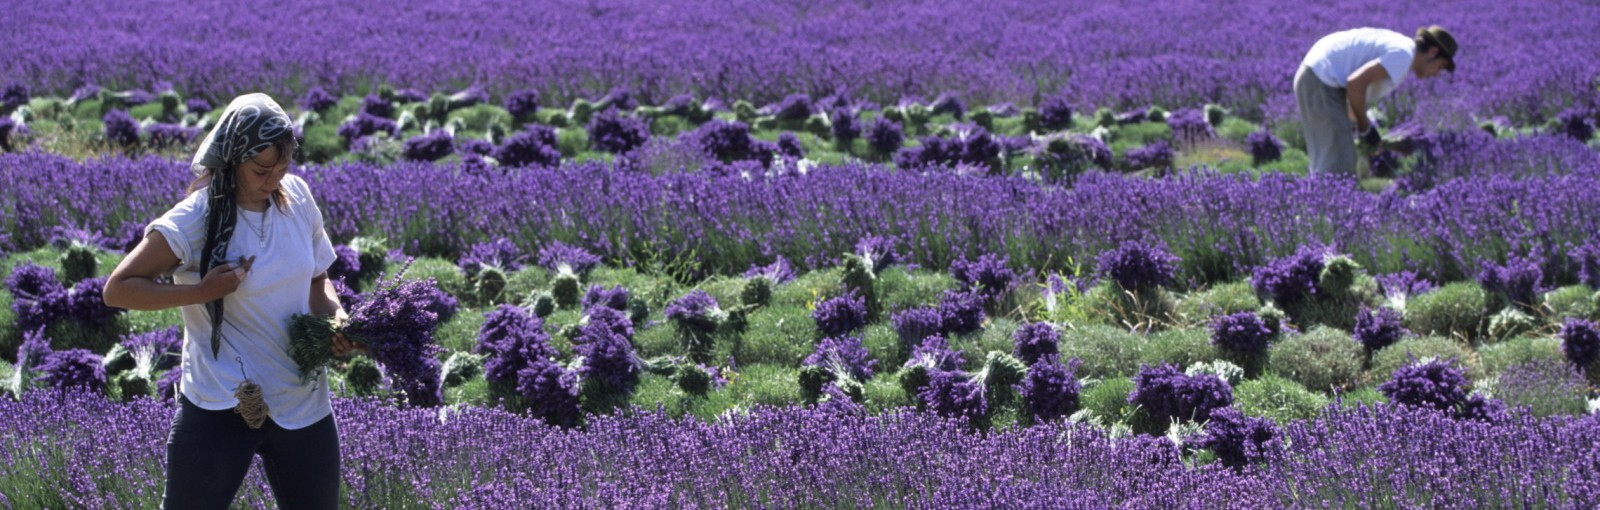 Tours One day in Provence by TGV train - Full days - Day tours from Paris